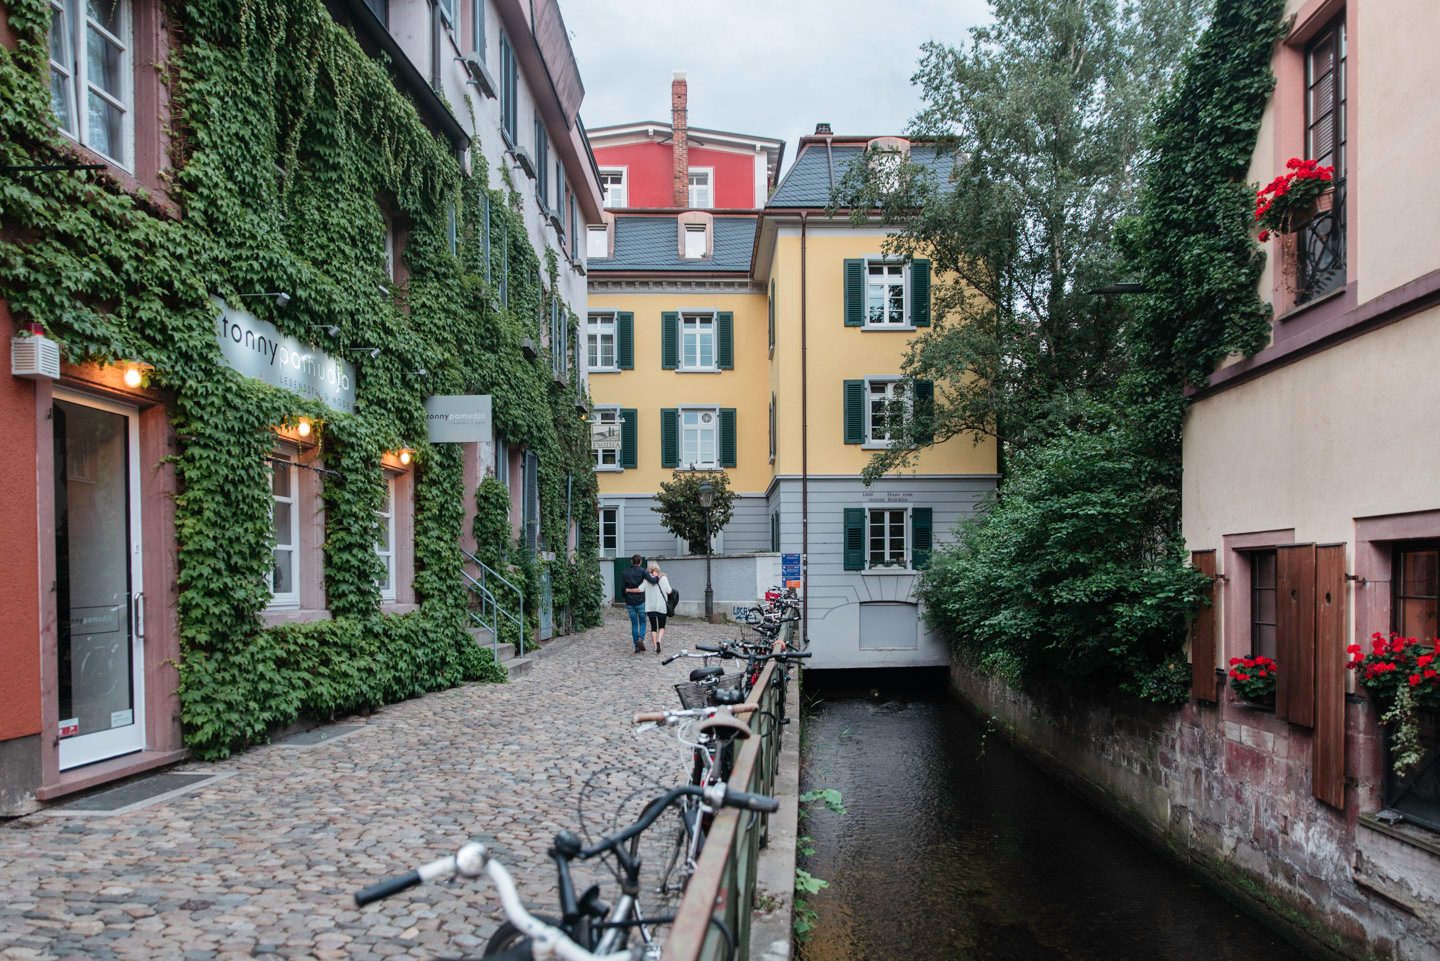 Blog-Mode-And-The-City-Lifestyle-Roadtrip-Allemagne-Autriche01